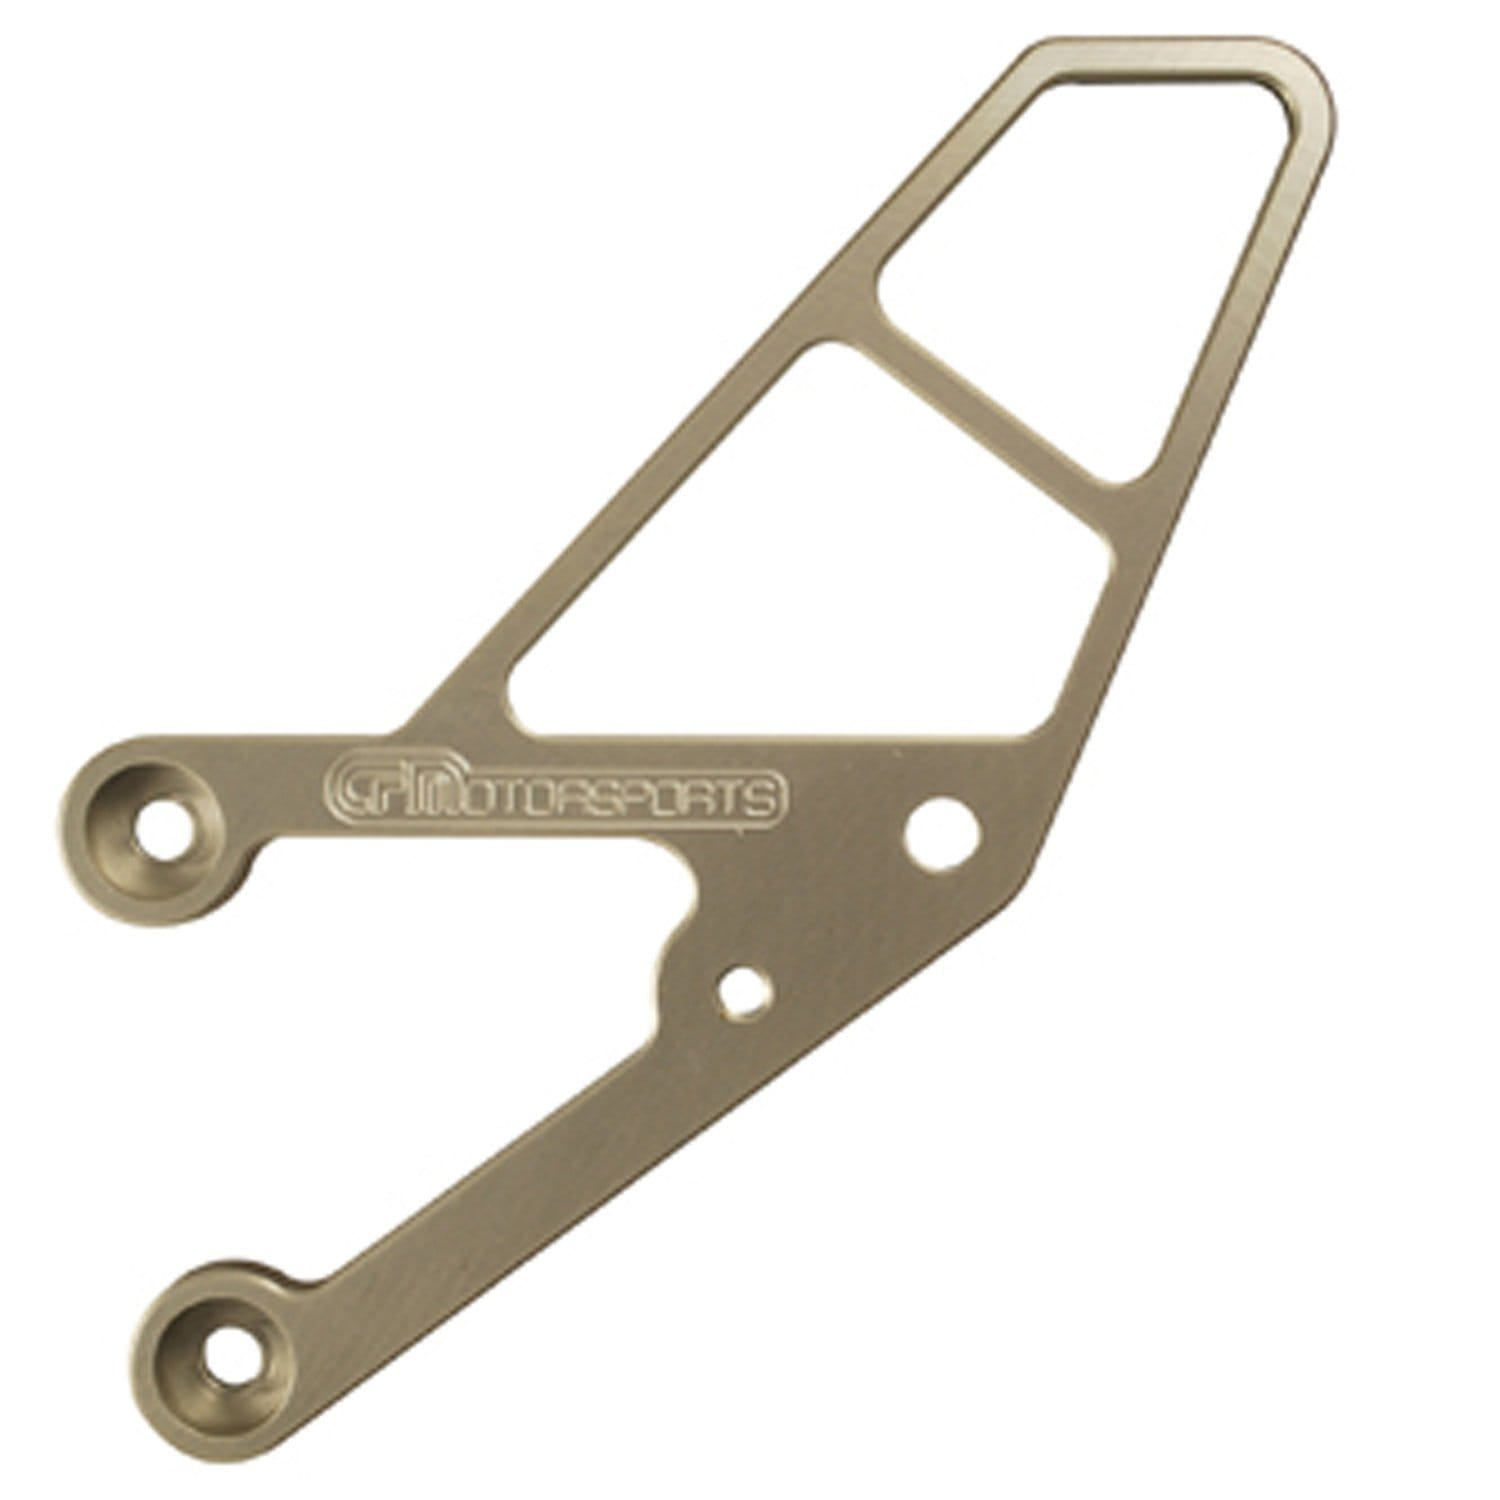 05-0320L Hon Hawk LHS Bracket - Woodcraft Technologies - Motorcycle Parts